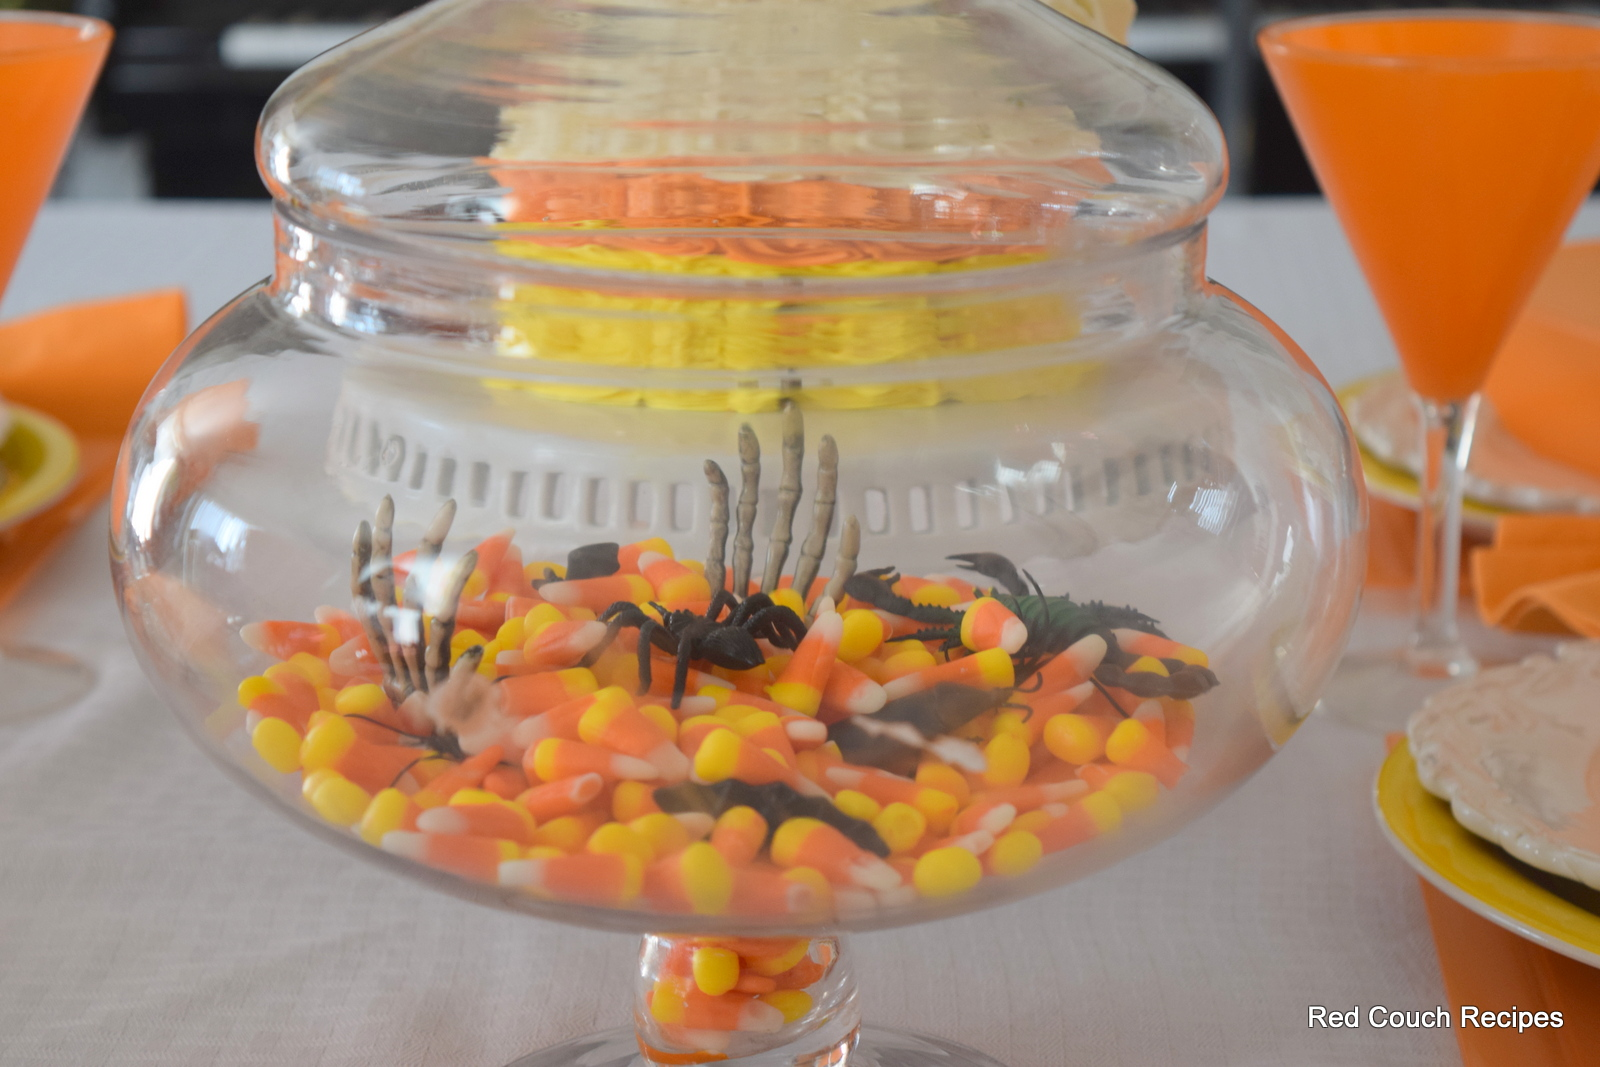 Red couch recipes candy corn halloween tablescape